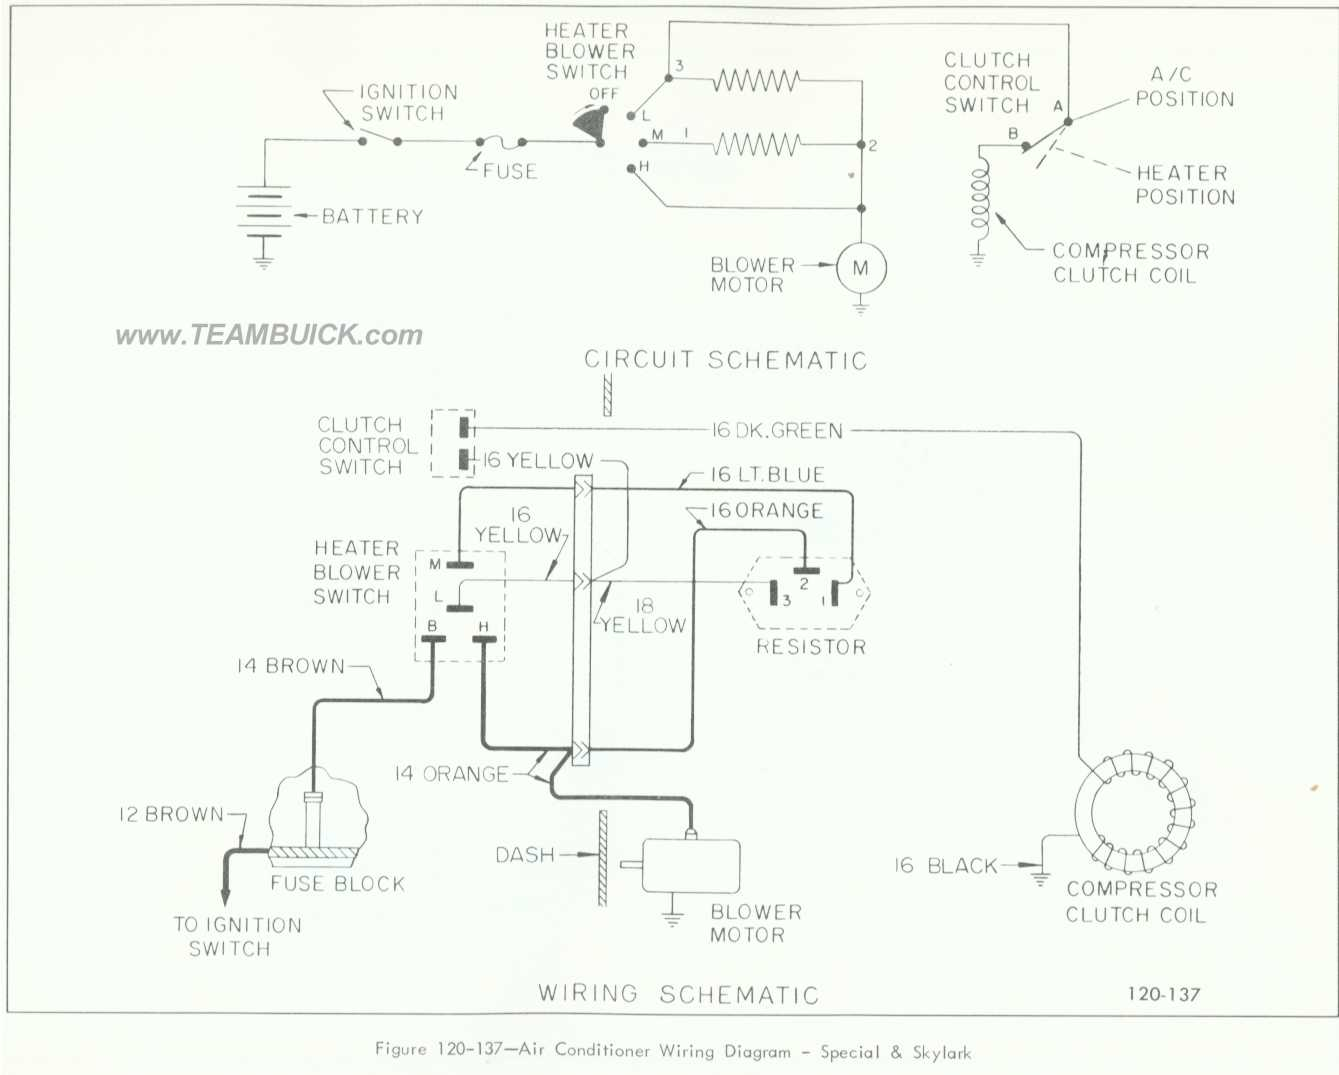 1966 buick special skylark air conditioner wiring diagram rh teambuick com